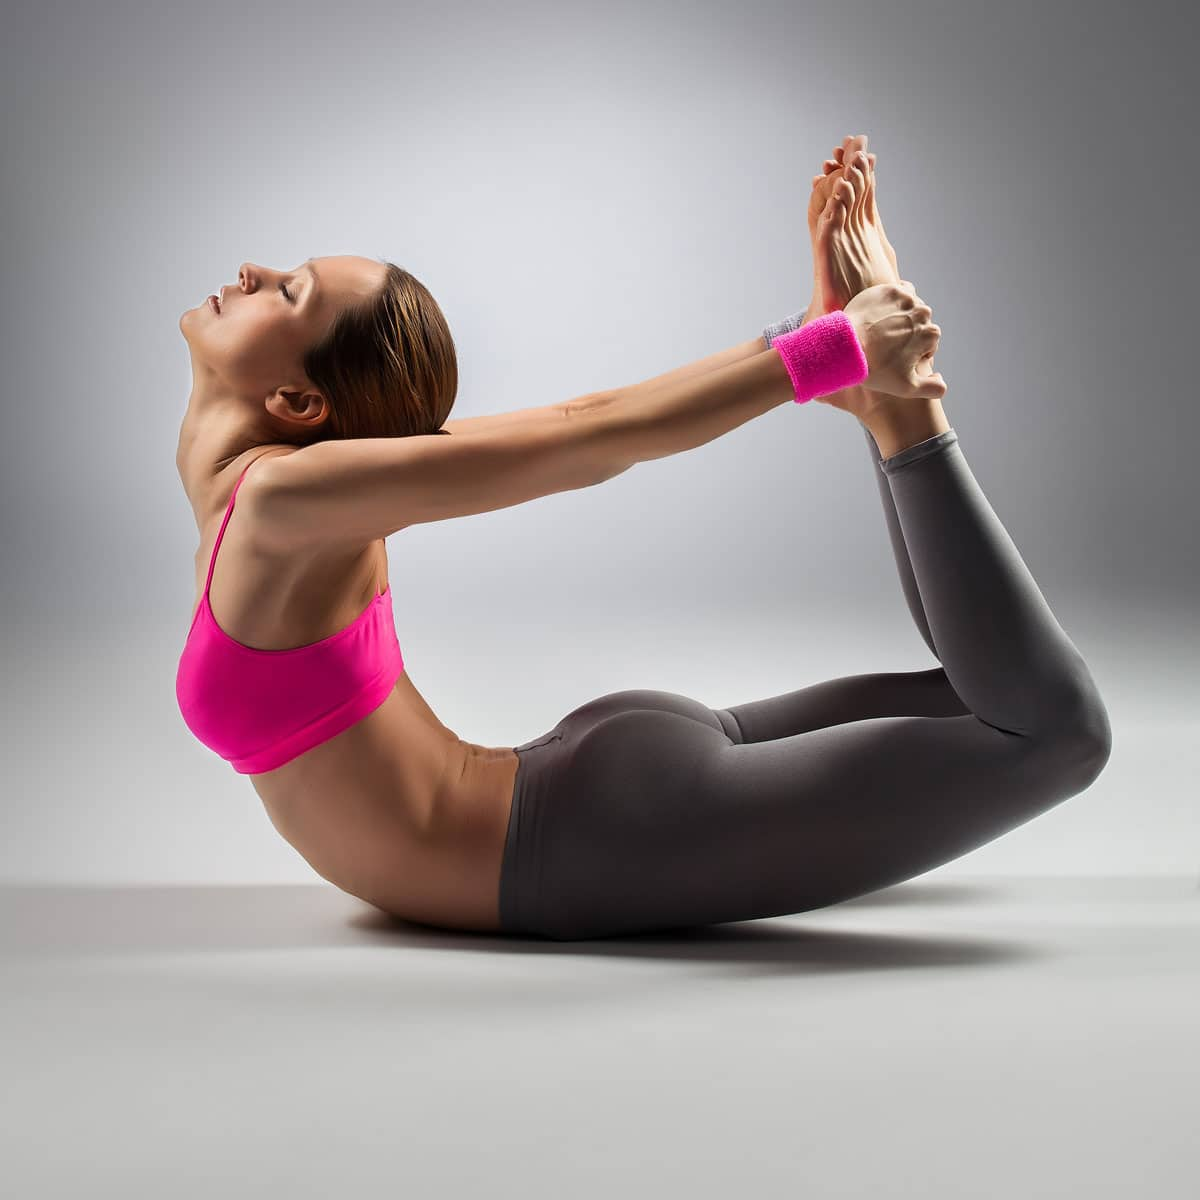 Yoga for Health: Get the Facts